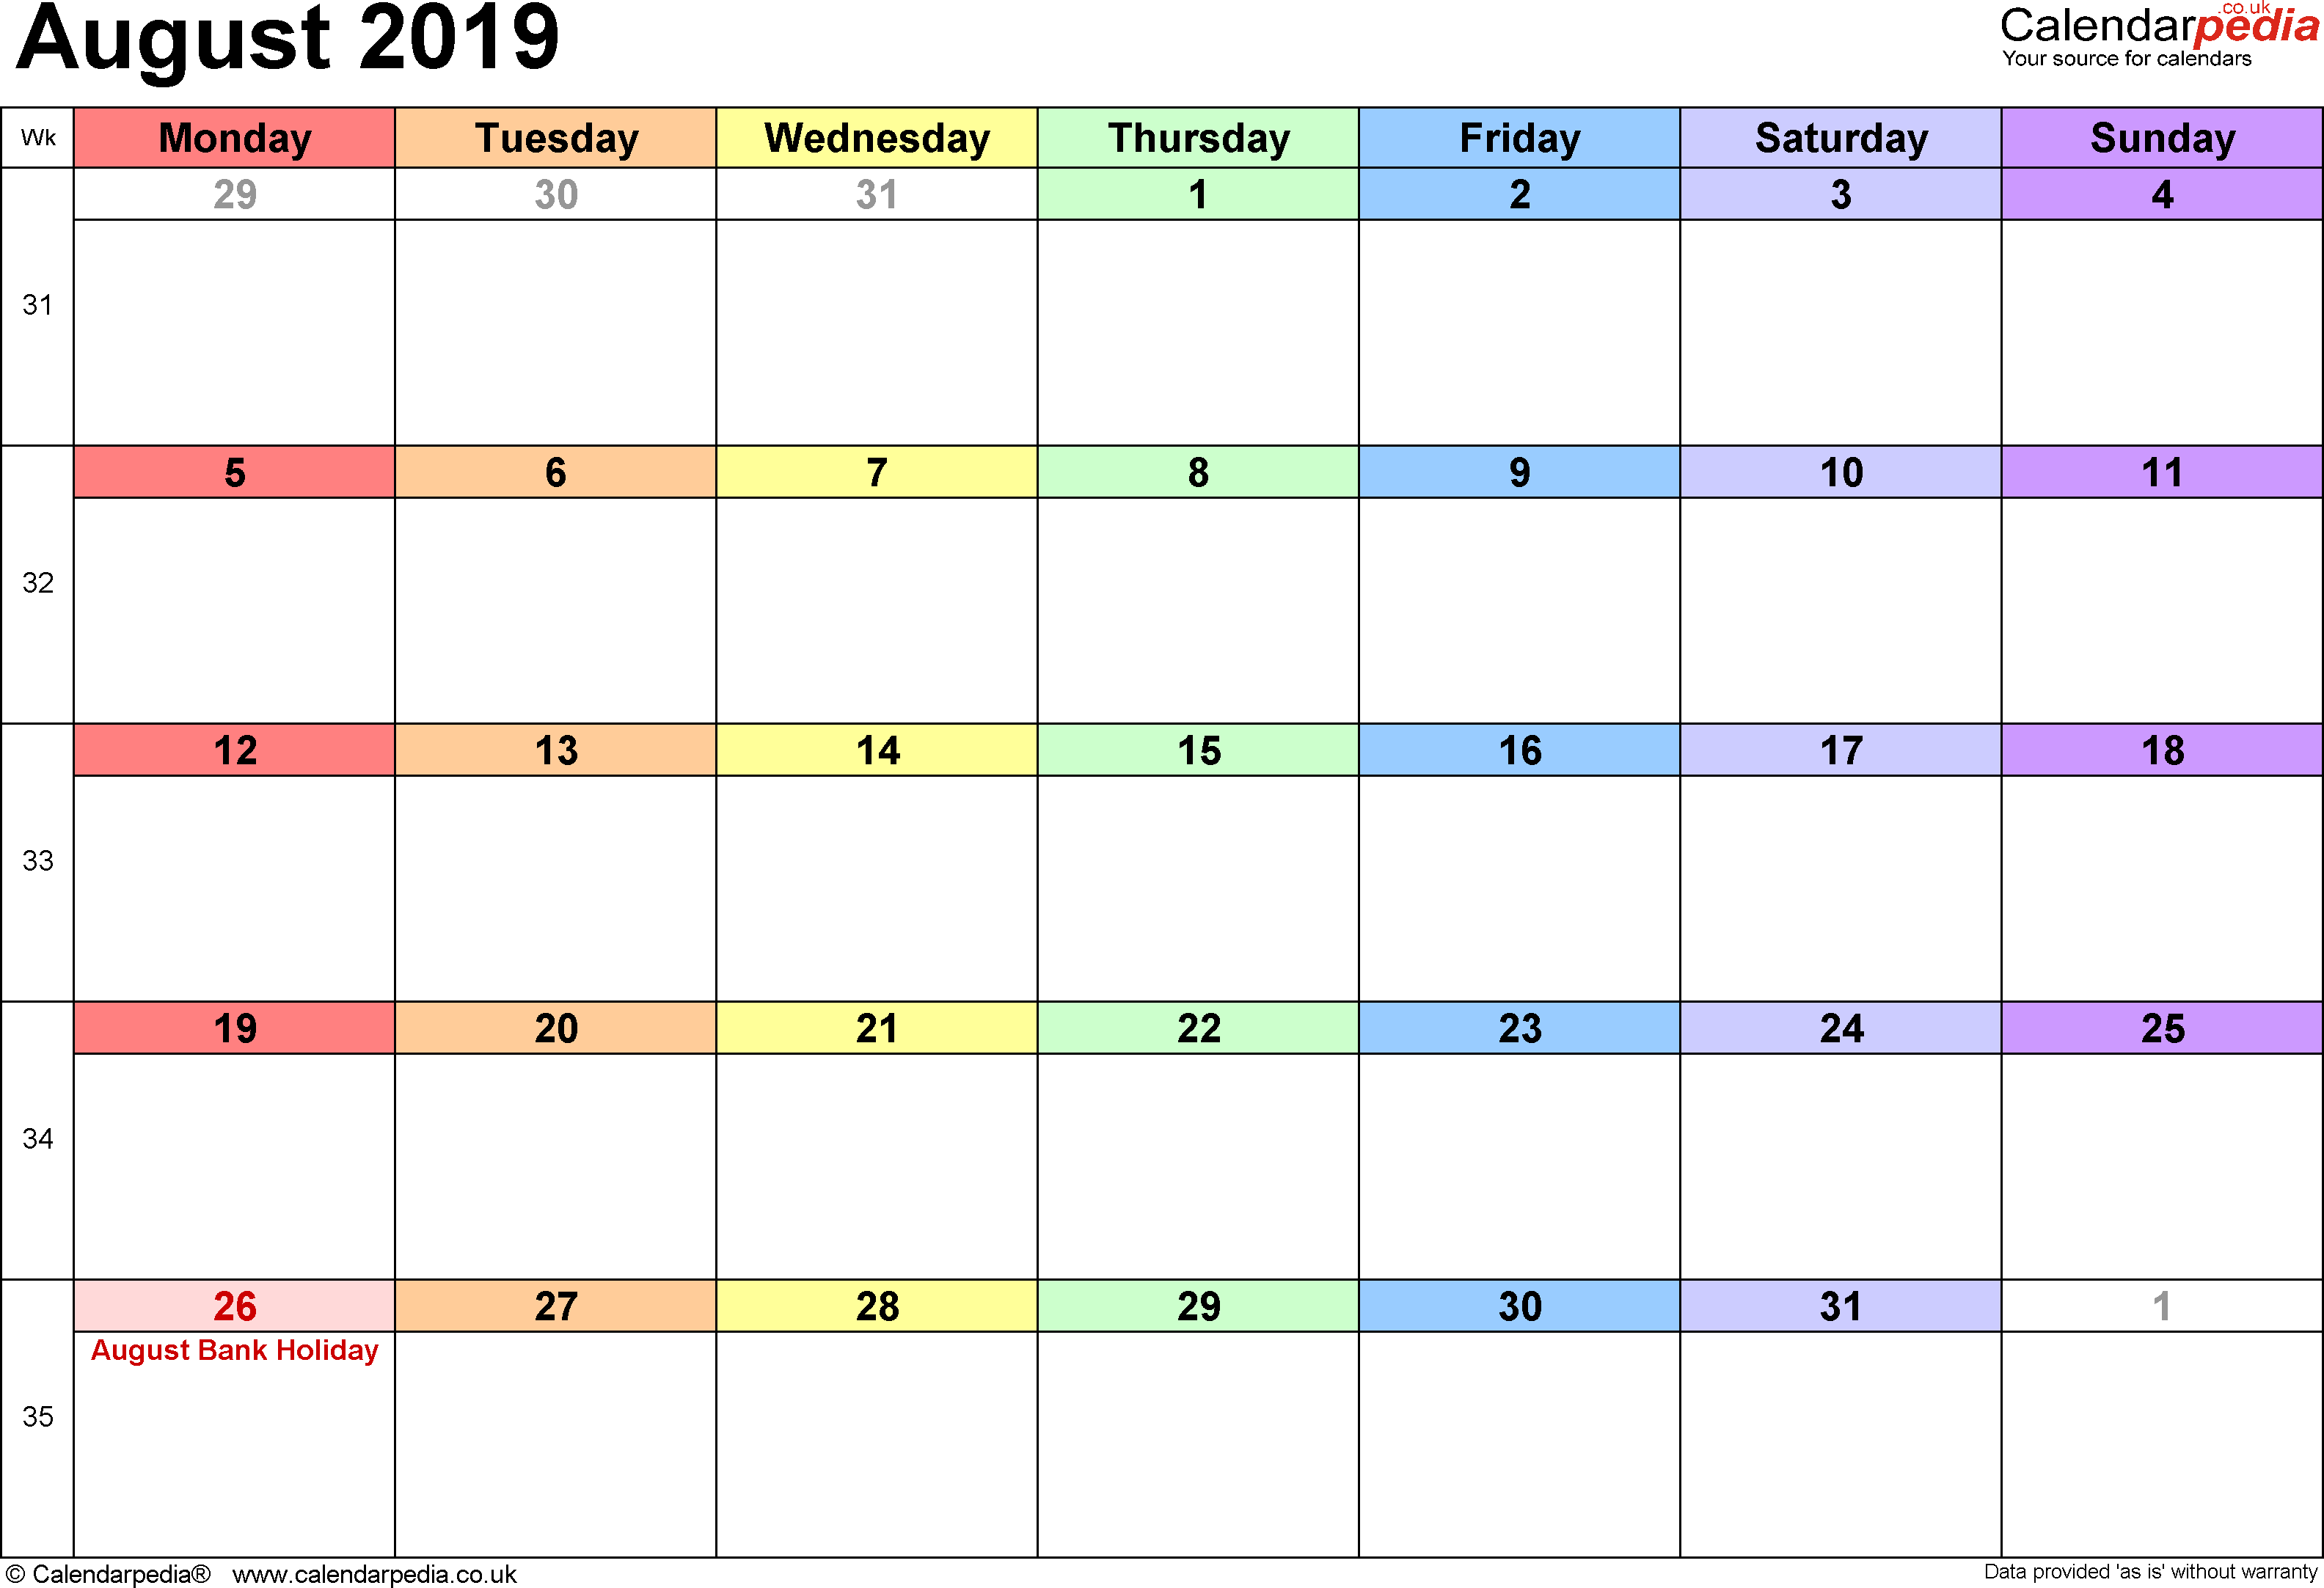 Calendar August 2019, landscape orientation, 1 page, with UK bank holidays and week numbers